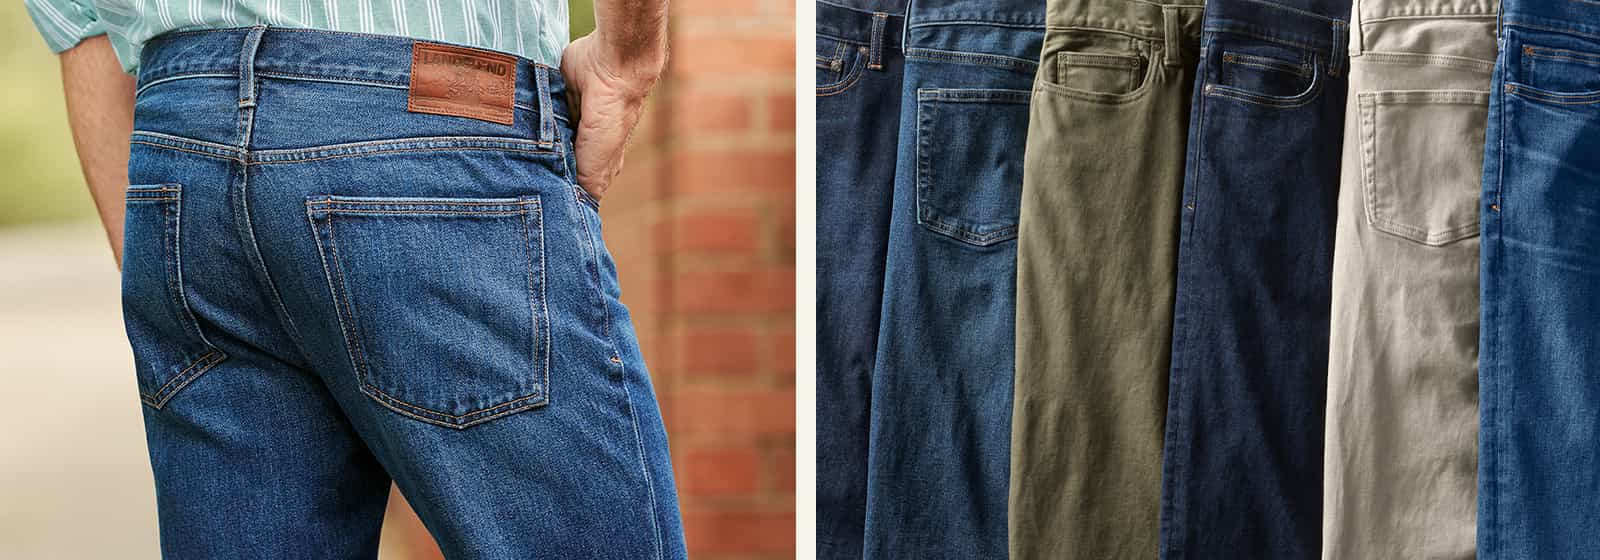 How a Good Pair of Jeans Can Change a Man's Life